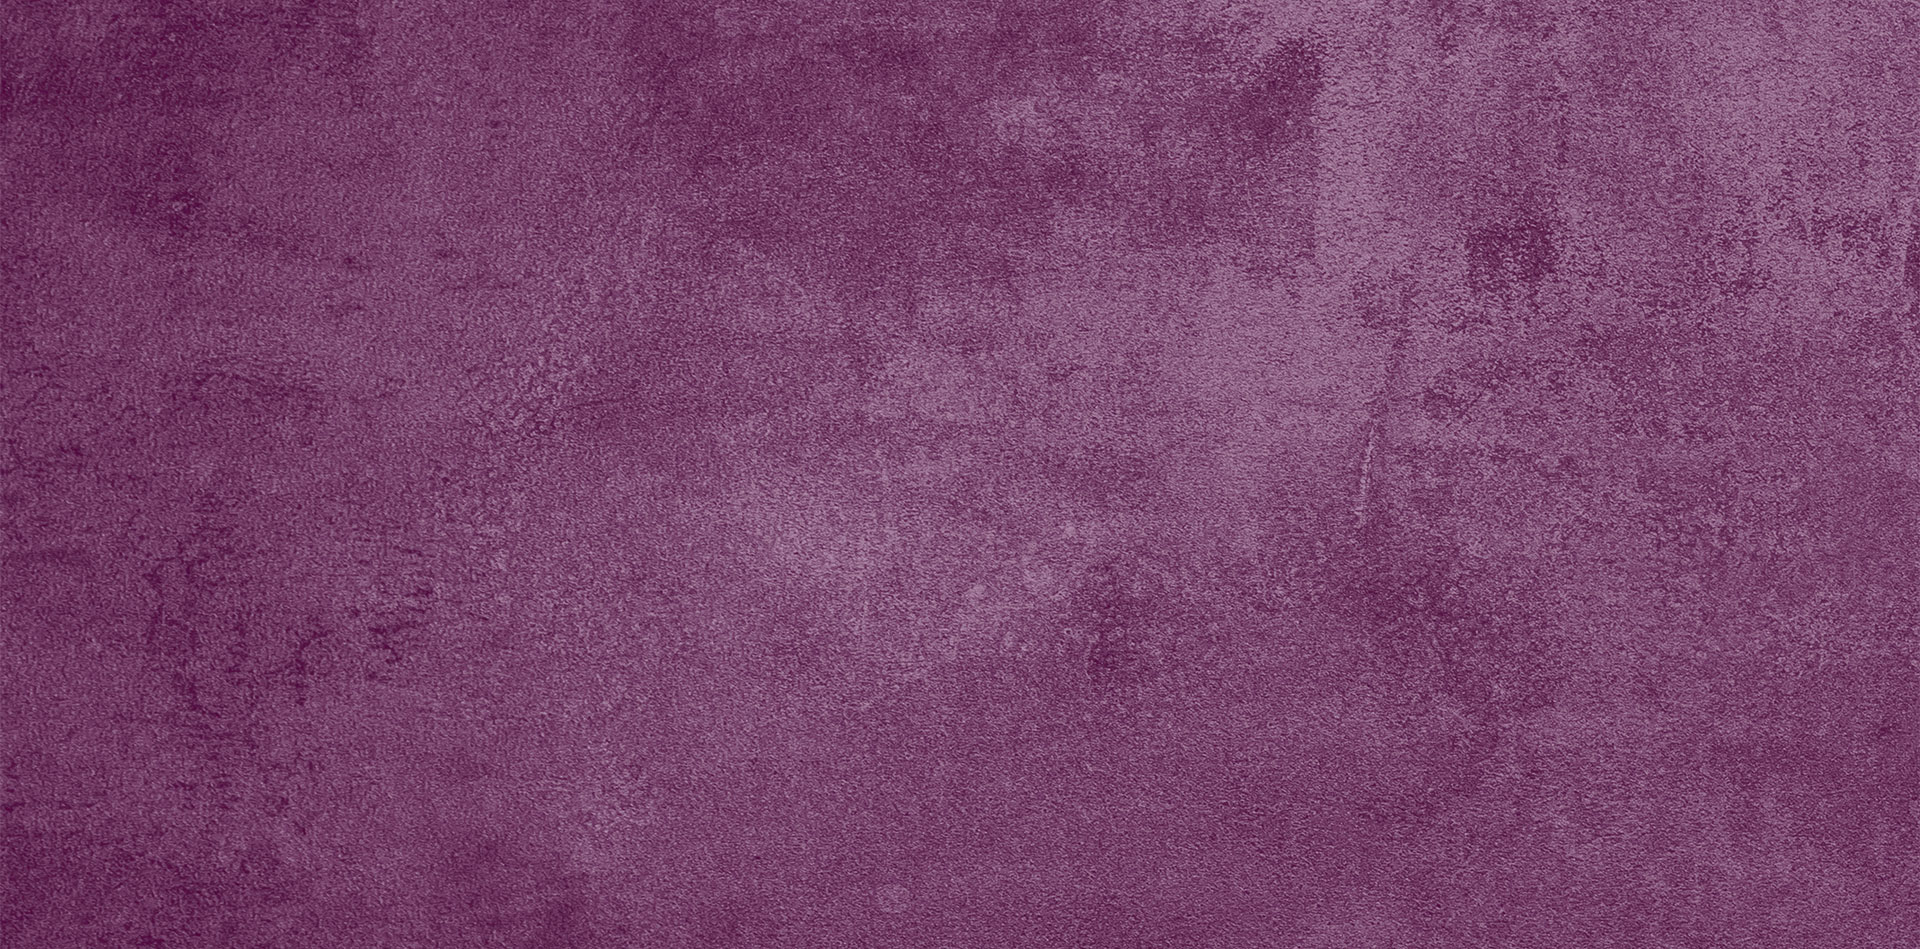 Purple-BG-Img-New